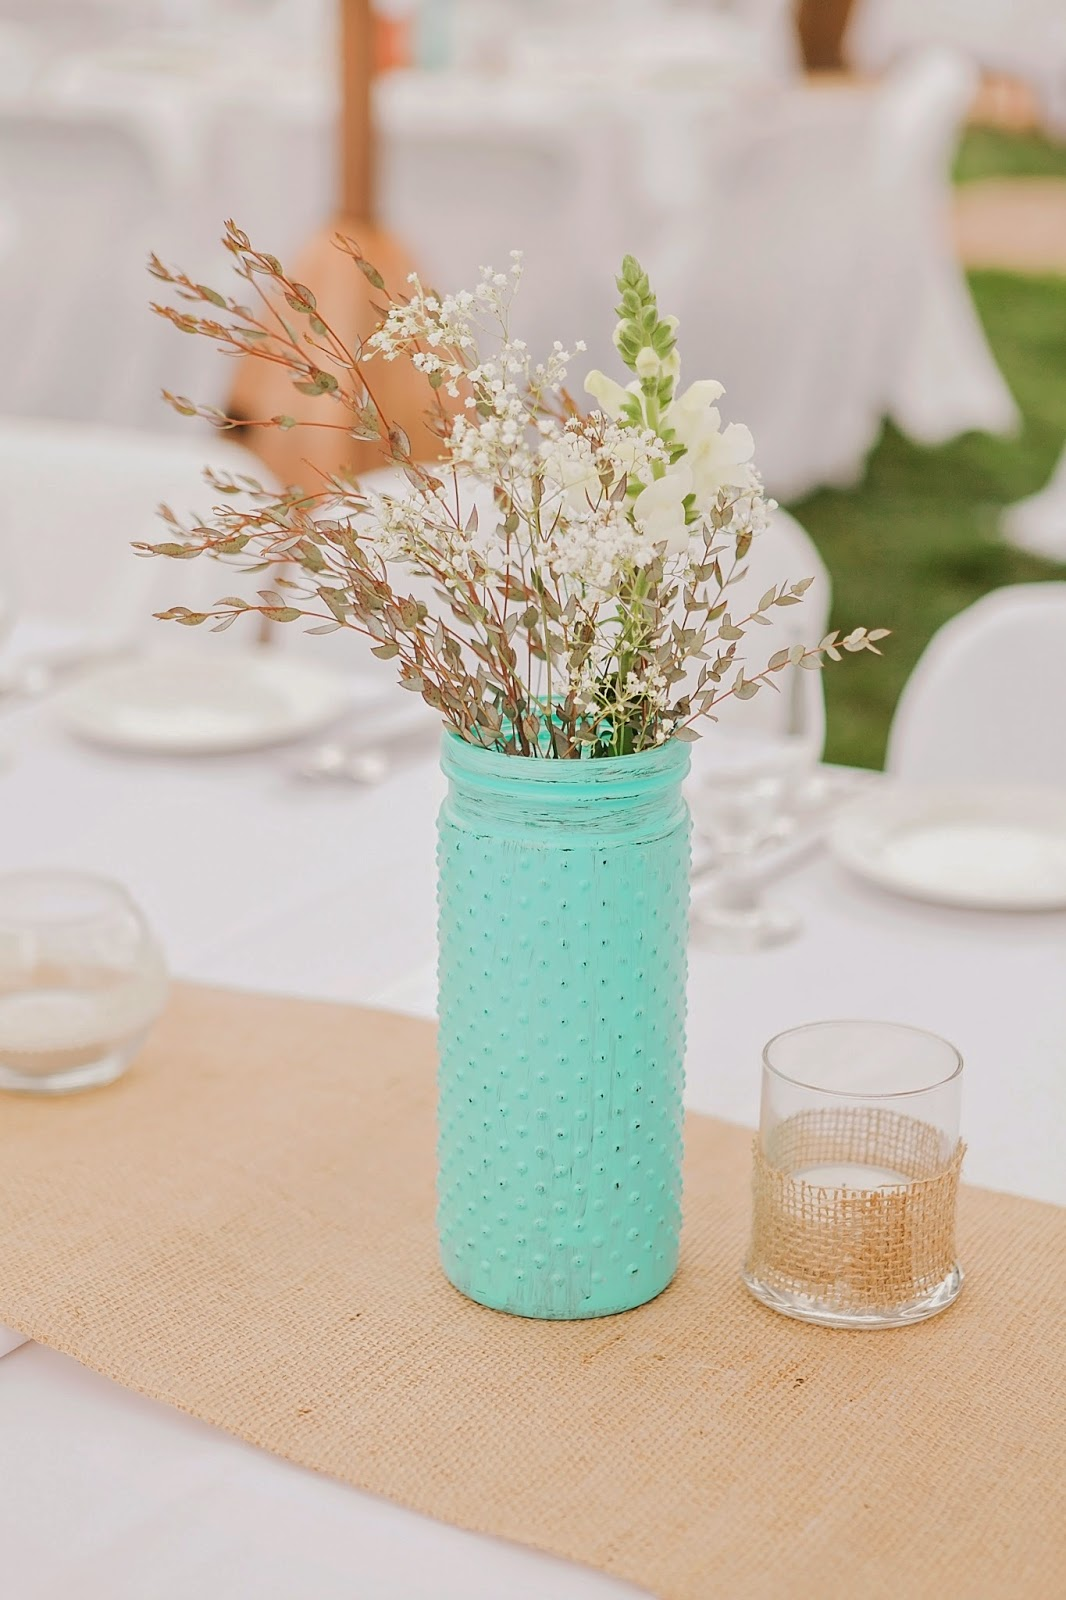 coral and turquoise wedding decor, handpainted vases for wedding decor, outdoor wedding decor, diy wedding vases, garden wedding, outdoor wedding, spring wedding, coral wedding, turquoise wedding, simple wedding decor